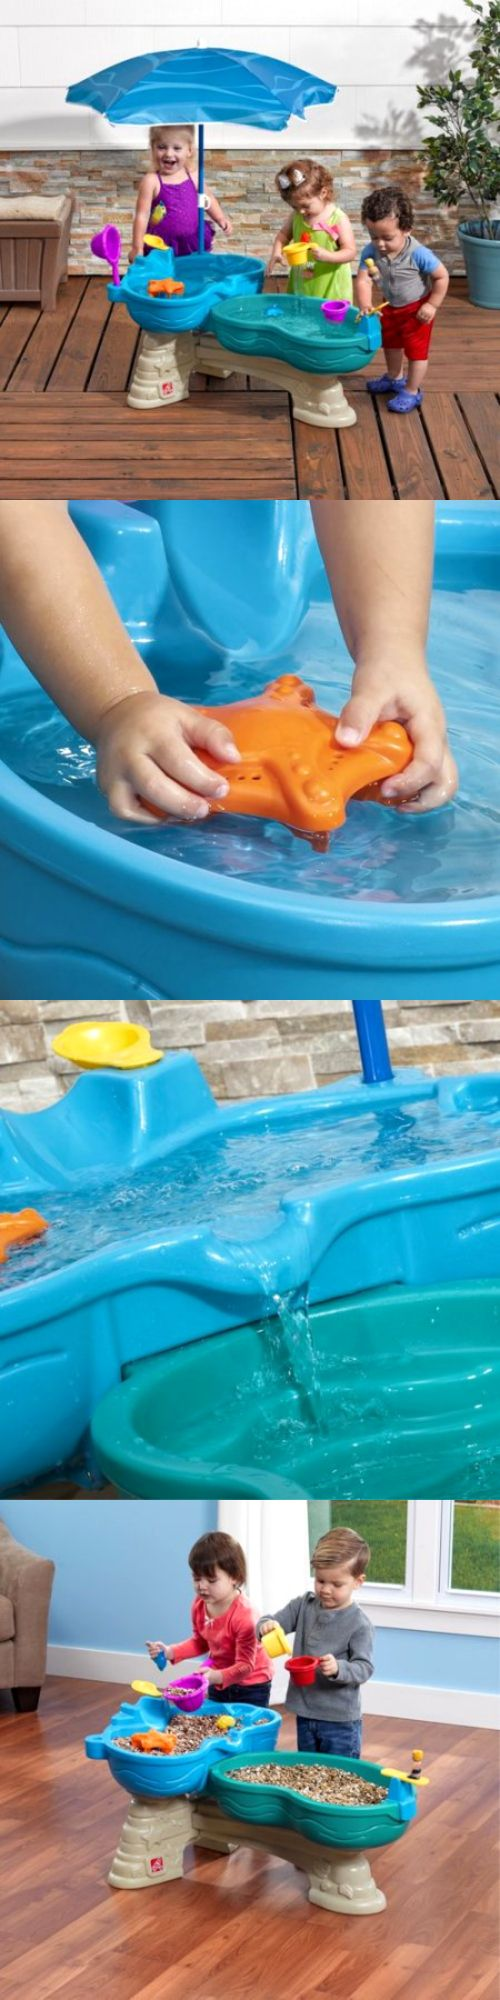 Water Toys 145993: Step2 Spill And Splash Seaway Water Table Includes Umbrella For Shade -> BUY IT NOW ONLY: $78.97 on eBay!